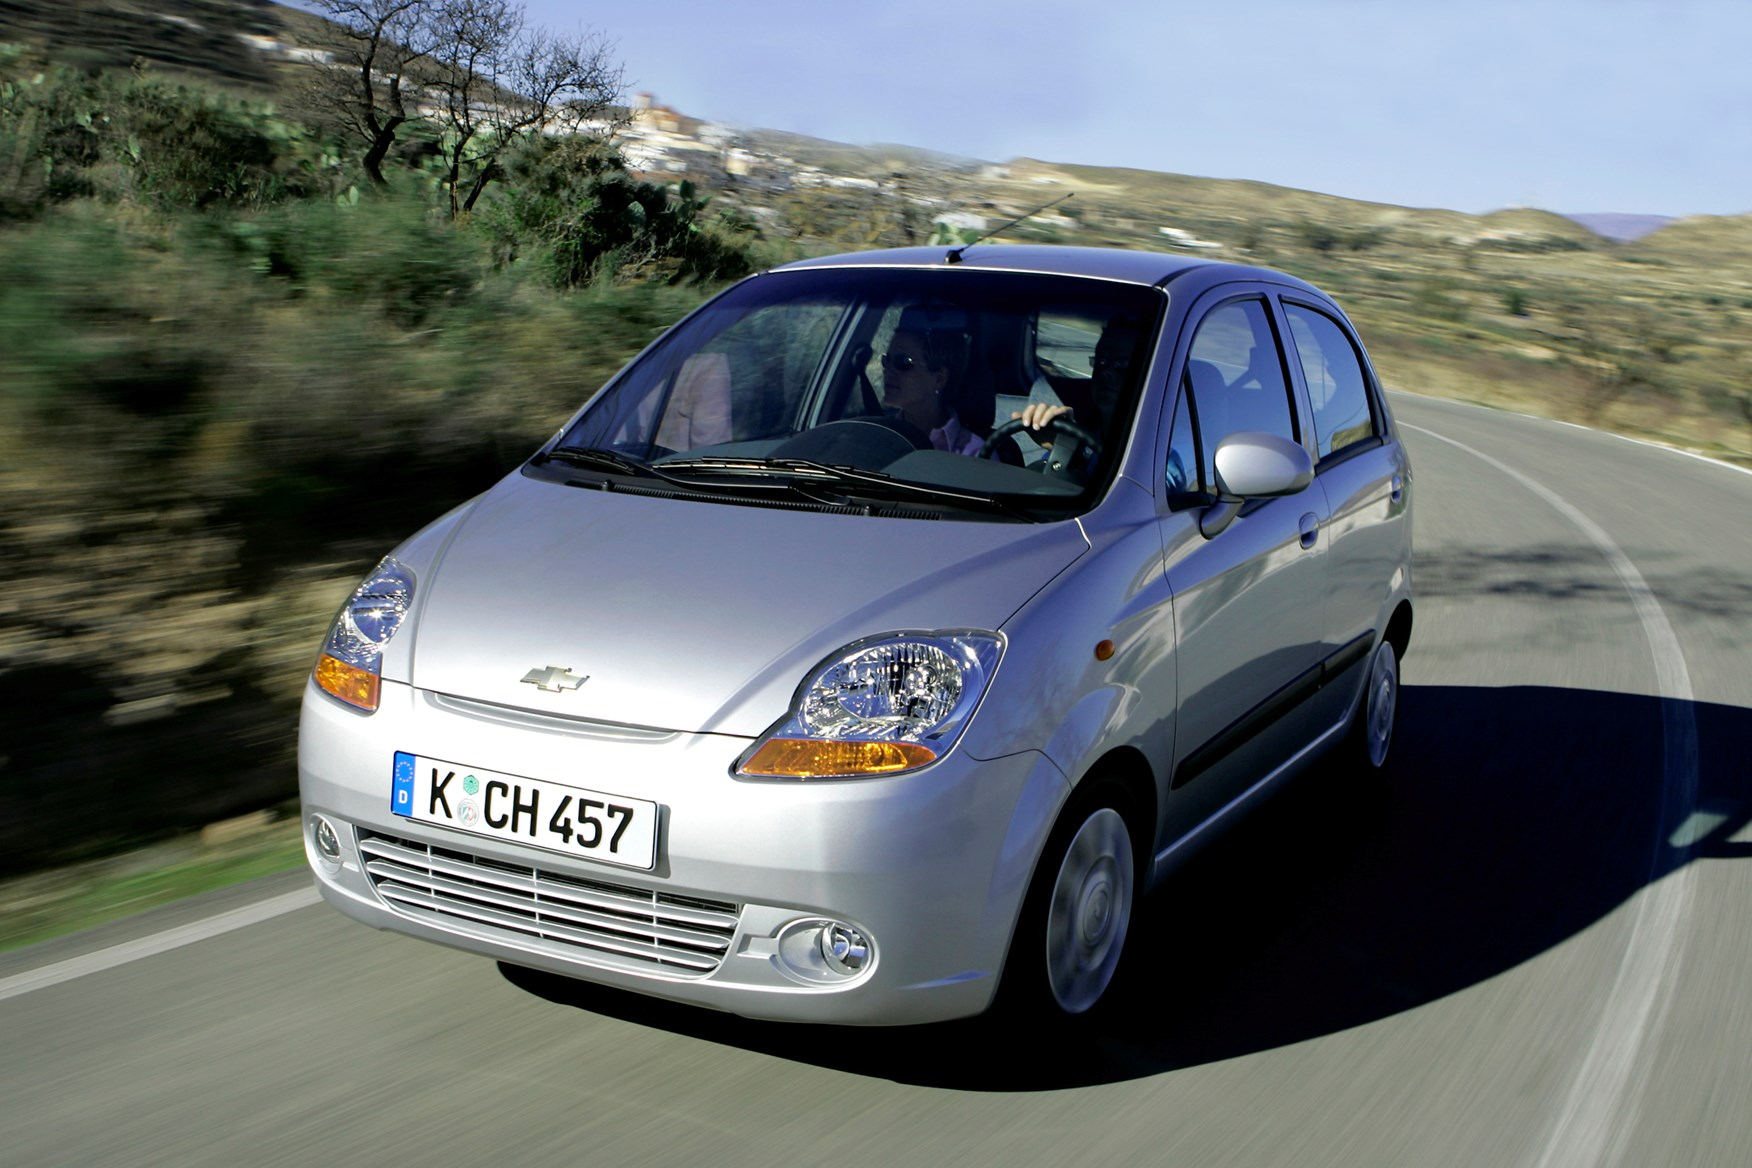 Chevrolet Matiz Hatchback Review 2005 2009 Parkers Manual How Much Is It To Insure